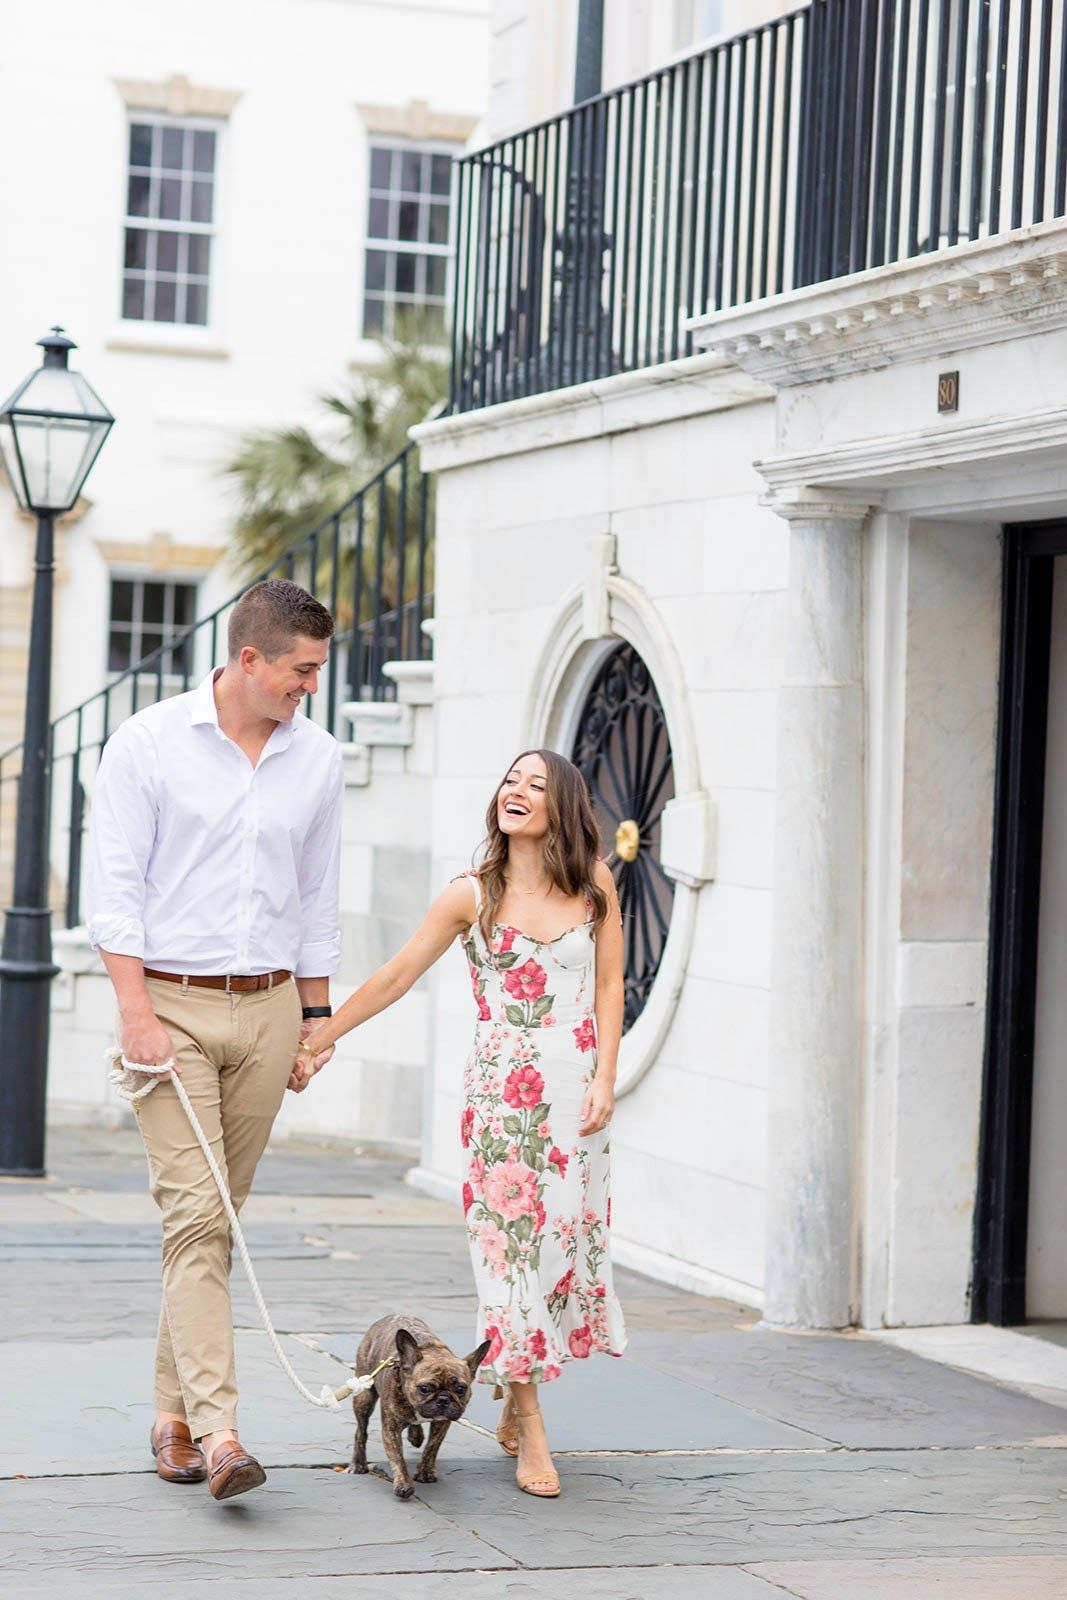 Gab, Bill and Pippa - A Sunny and Colorful Charleston Engagement Session - Engaged Life